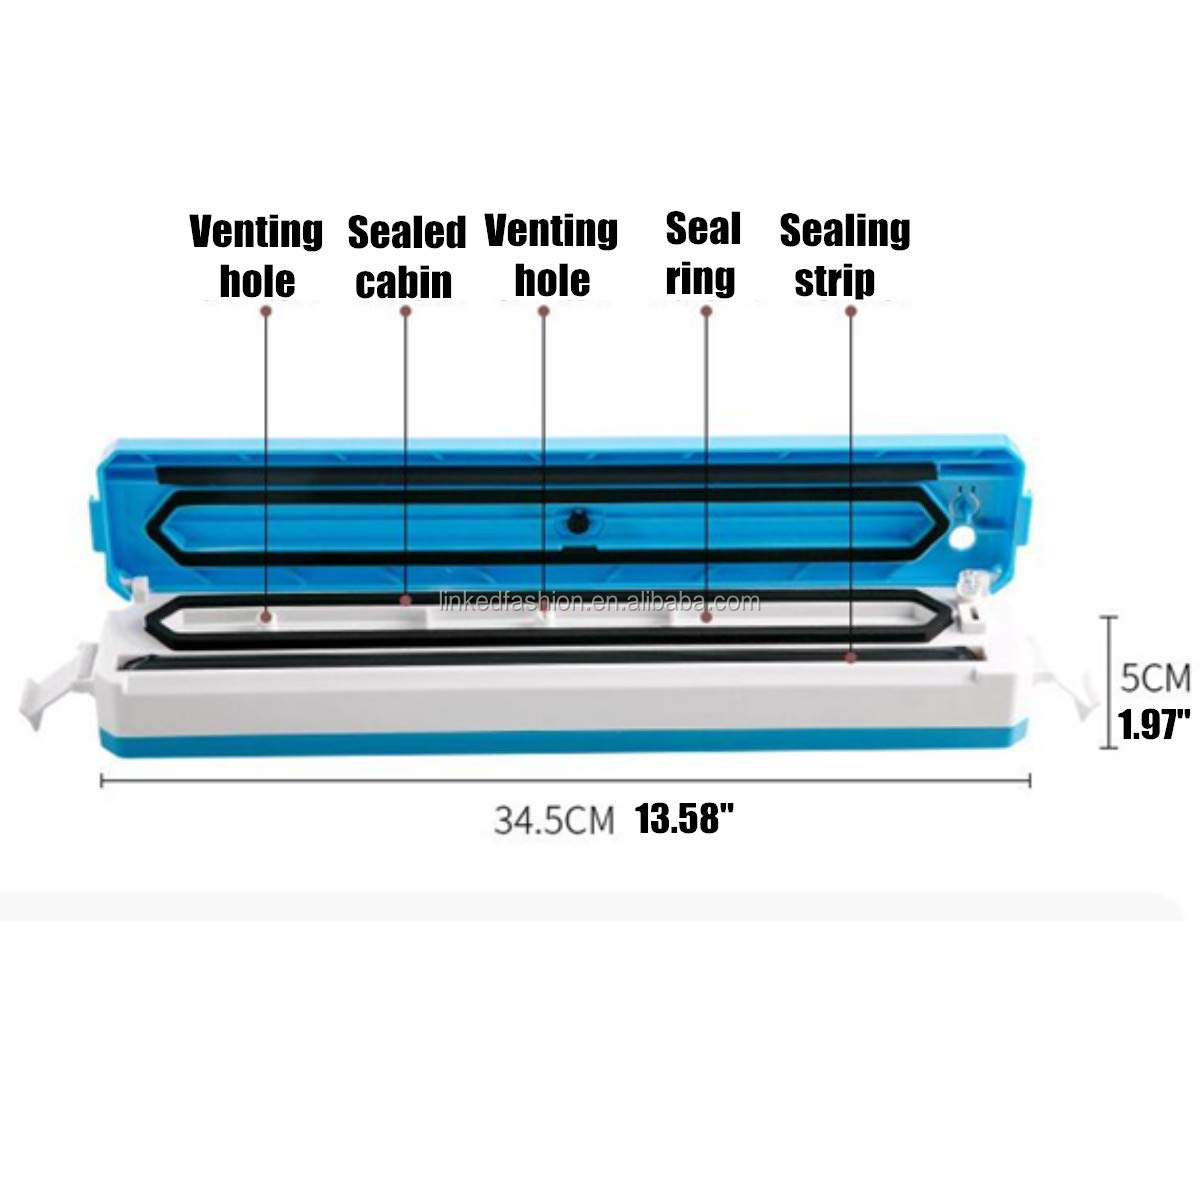 Vacuum Sealer, Linked Tech Automatic Vacuum Sealing Machine for Both Dried and Wet Fresh Food, Suitable for Camping and Home Use